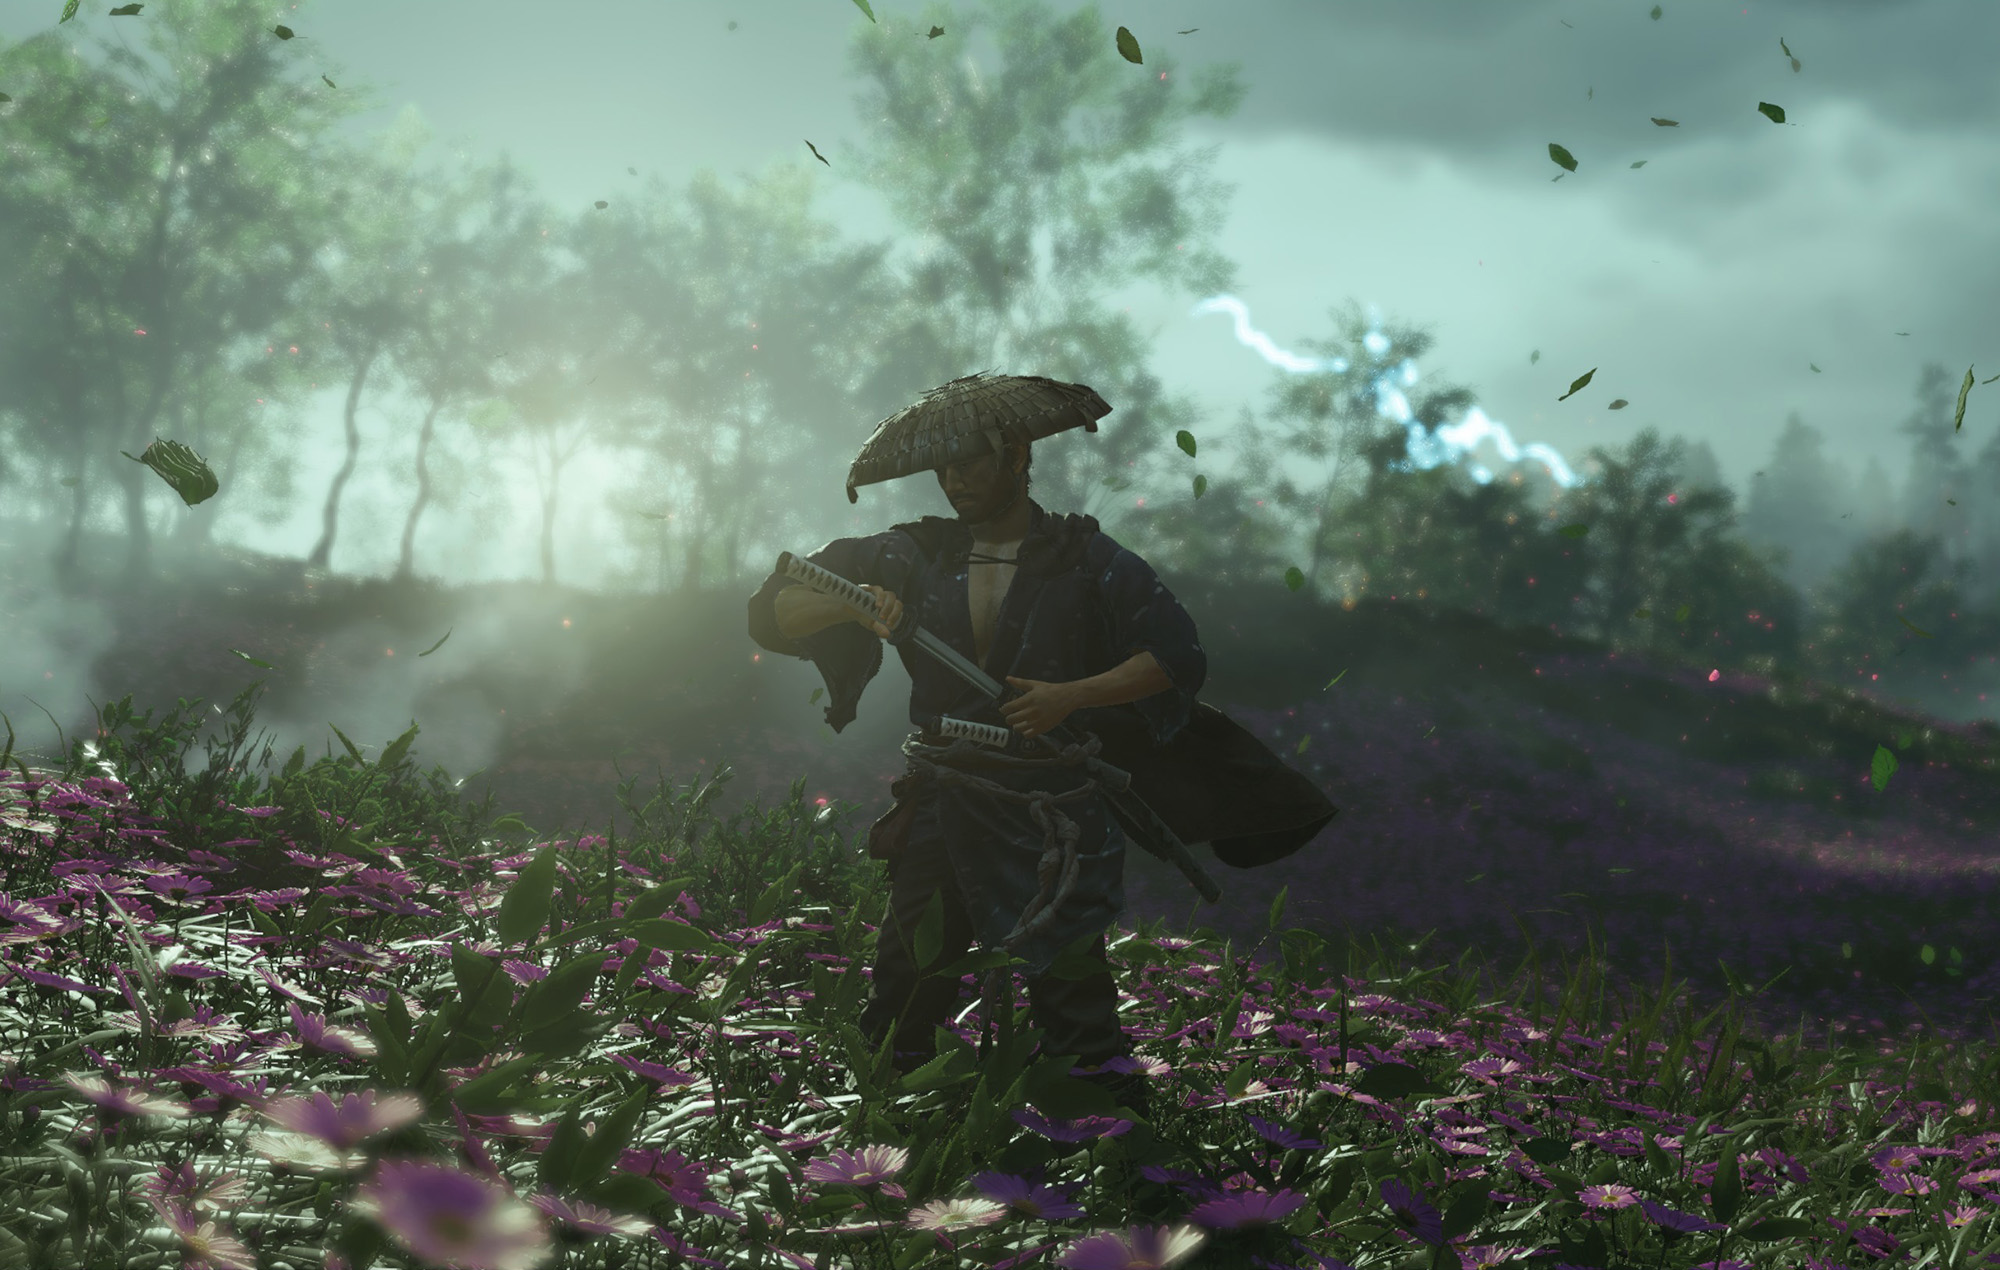 'Ghost Of Tsushima' gets new Digital Deluxe upgrade add-on | NME